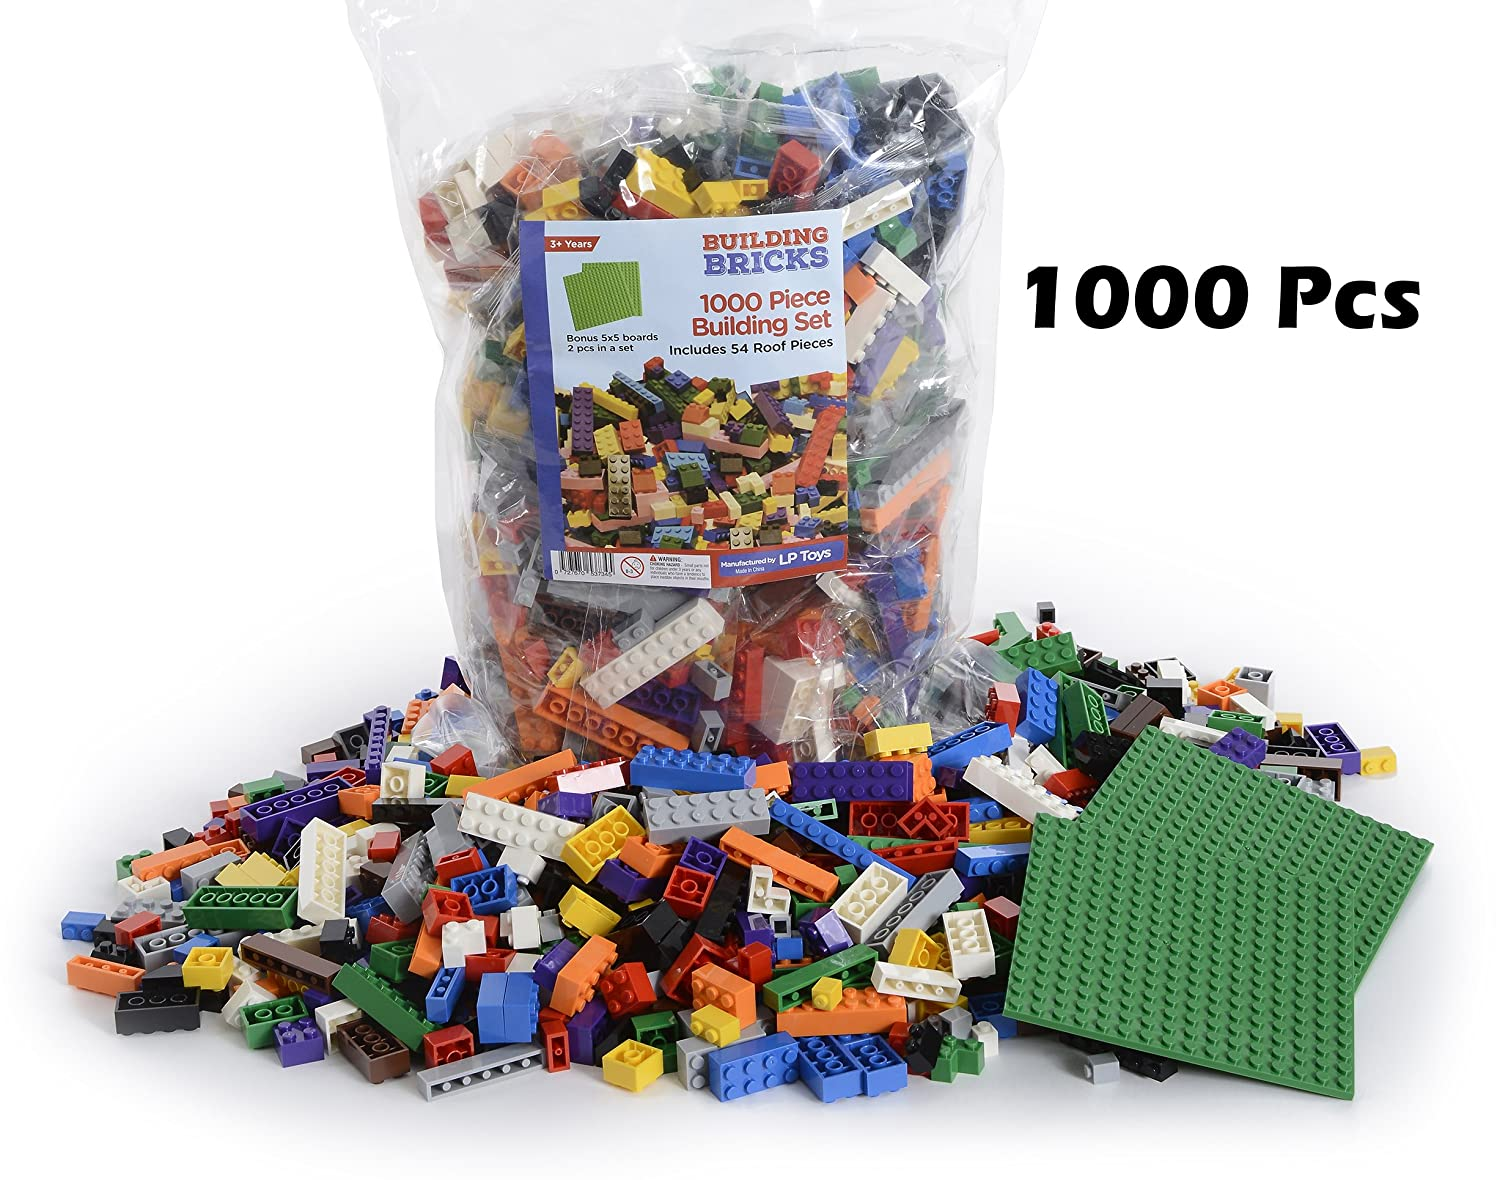 """LP Toys 1000 Piece Building Blocks for Toddlers - Includes 54 Roof Pieces - 2 FREE 5"""" x 5"""" Base Plates Included, Brick Build Toy in 10 Different Colors and 12 Different Shapes Included Review"""